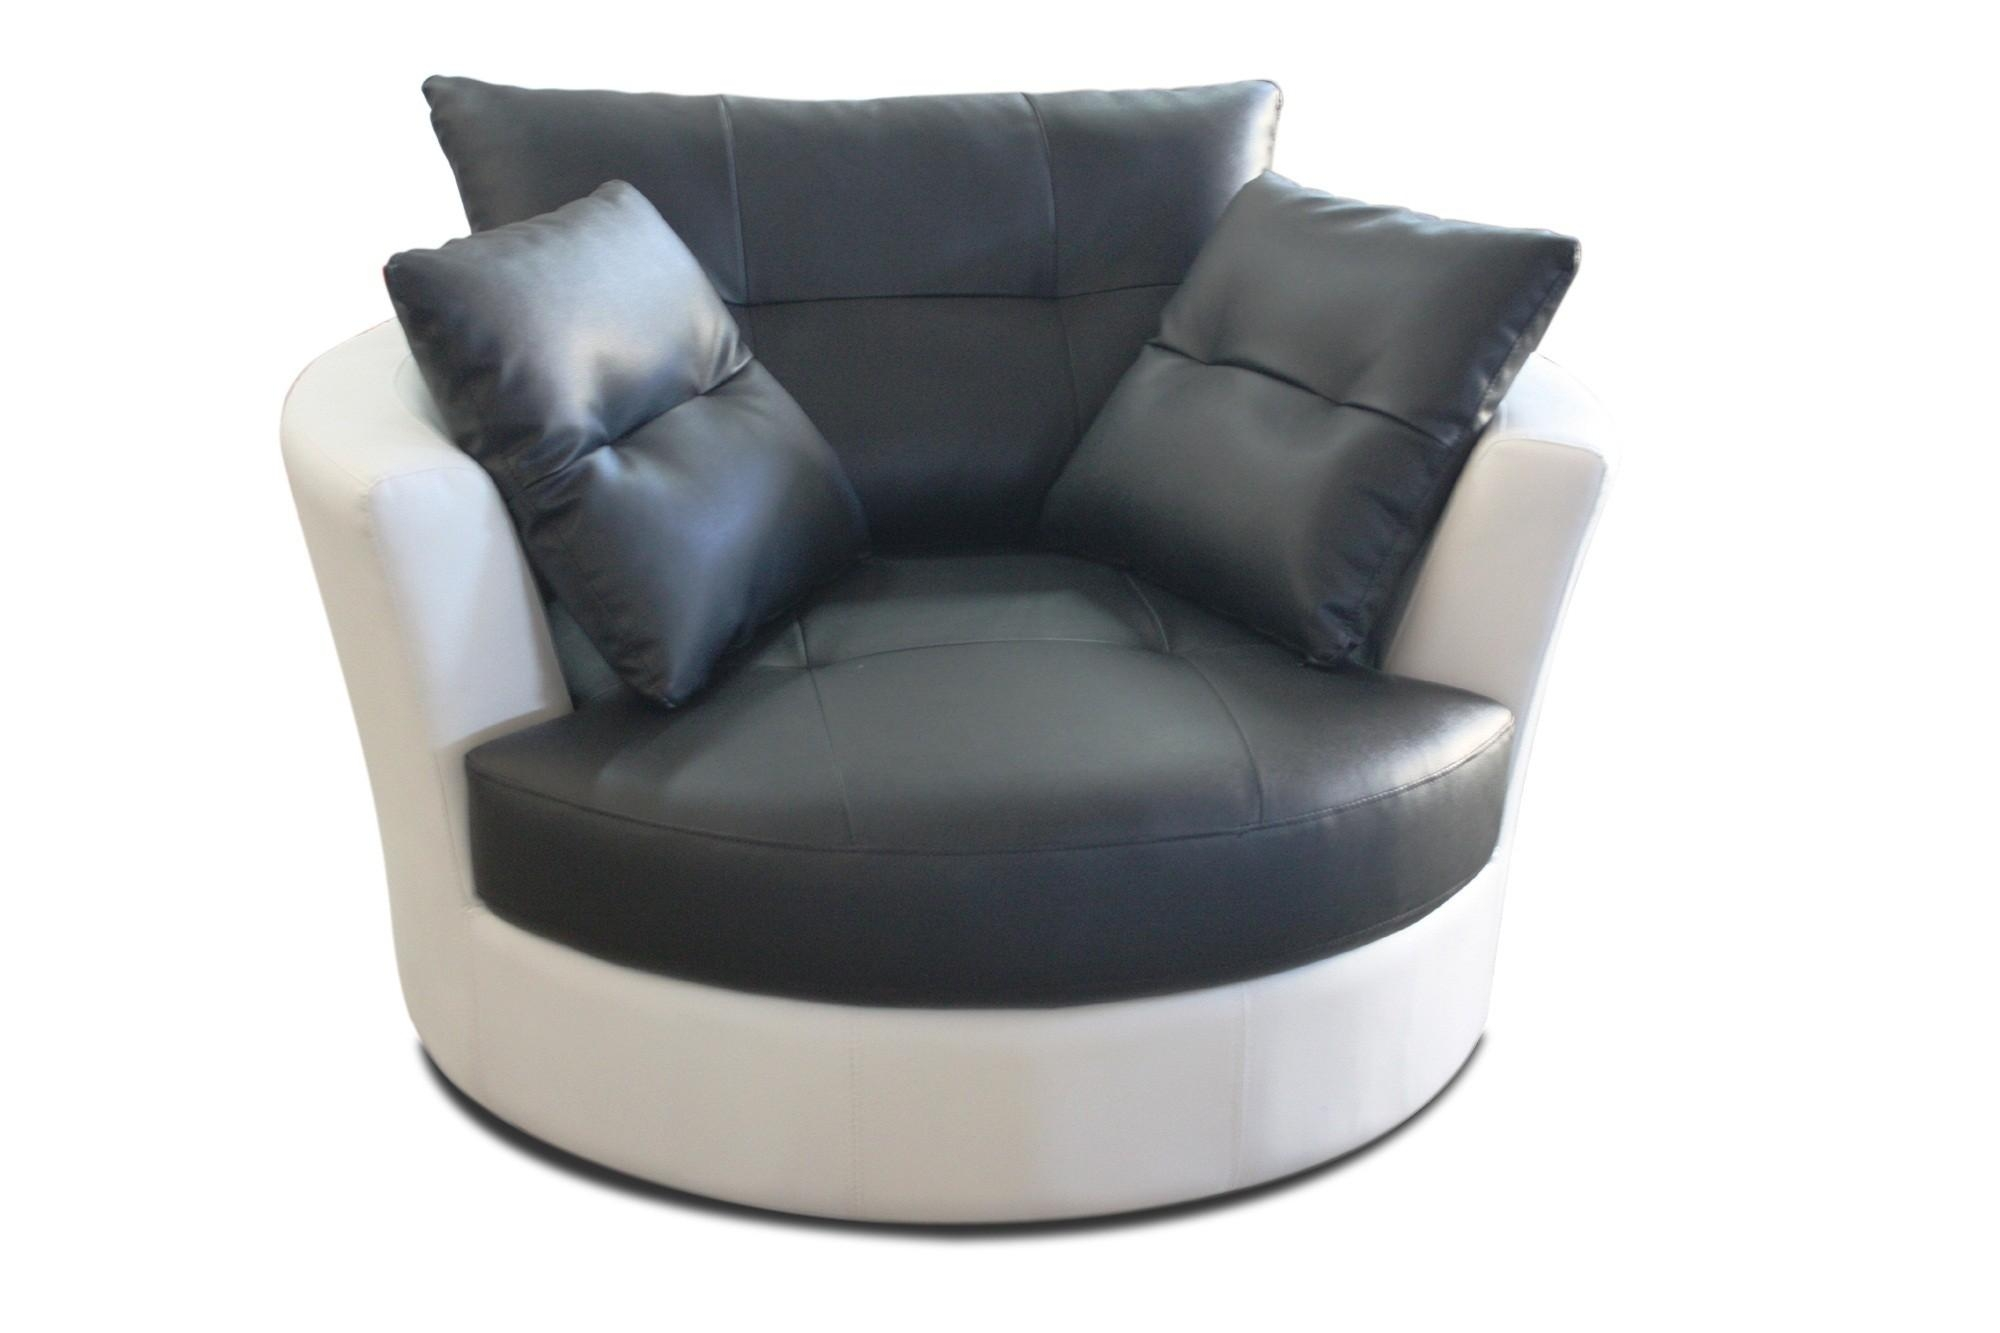 Lovely Swivel Sofa Chair 45 On Living Room Sofa Inspiration With Pertaining To Cuddler Swivel Sofa Chairs (Image 10 of 20)